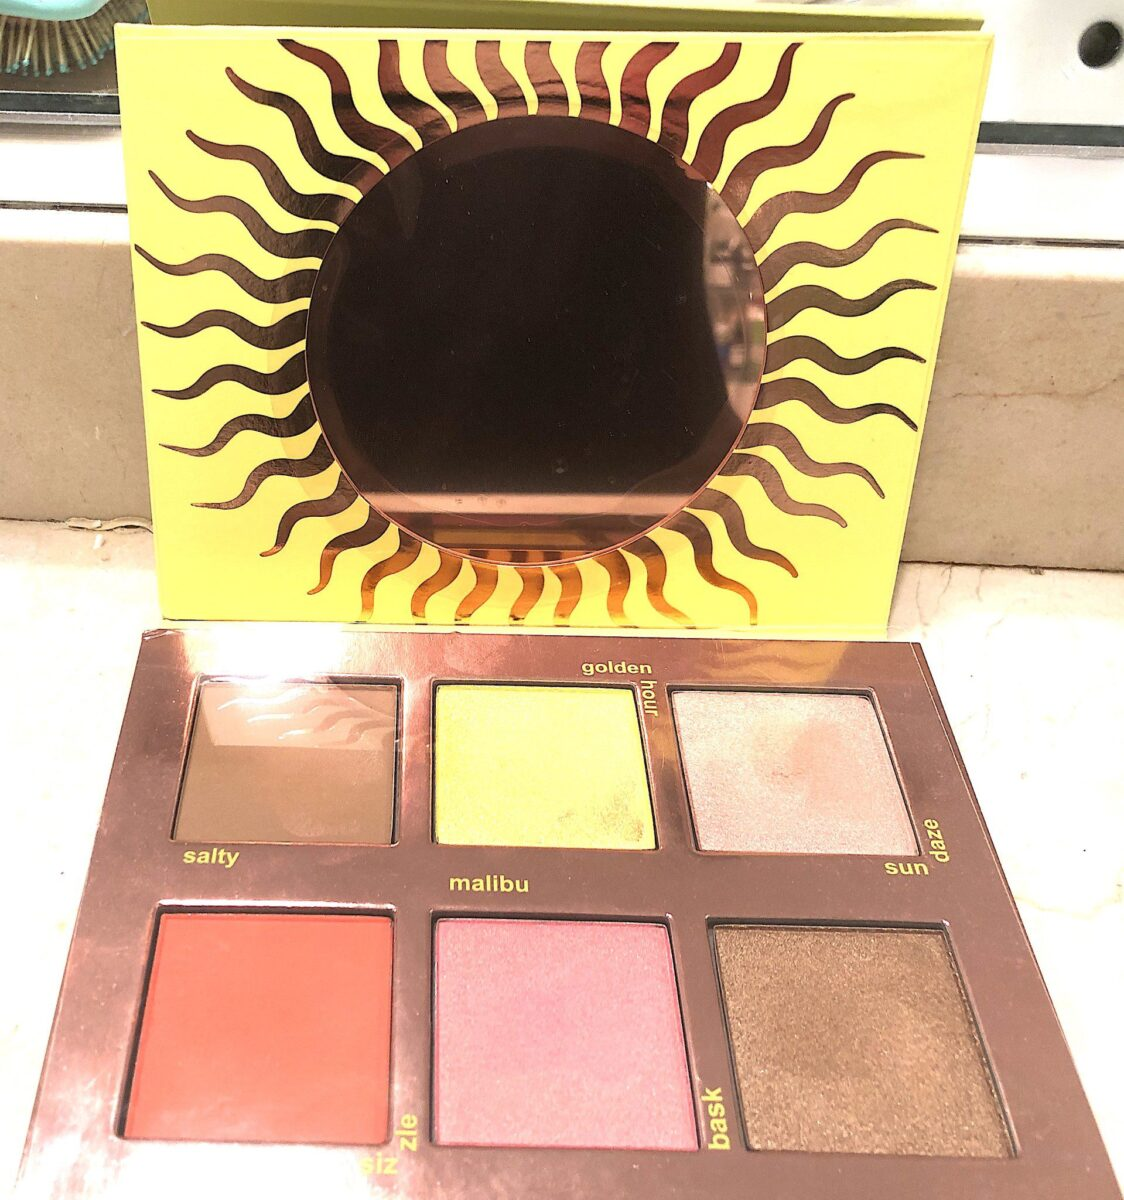 THE LIME CRIME SUNKISSED FACE PALETTE